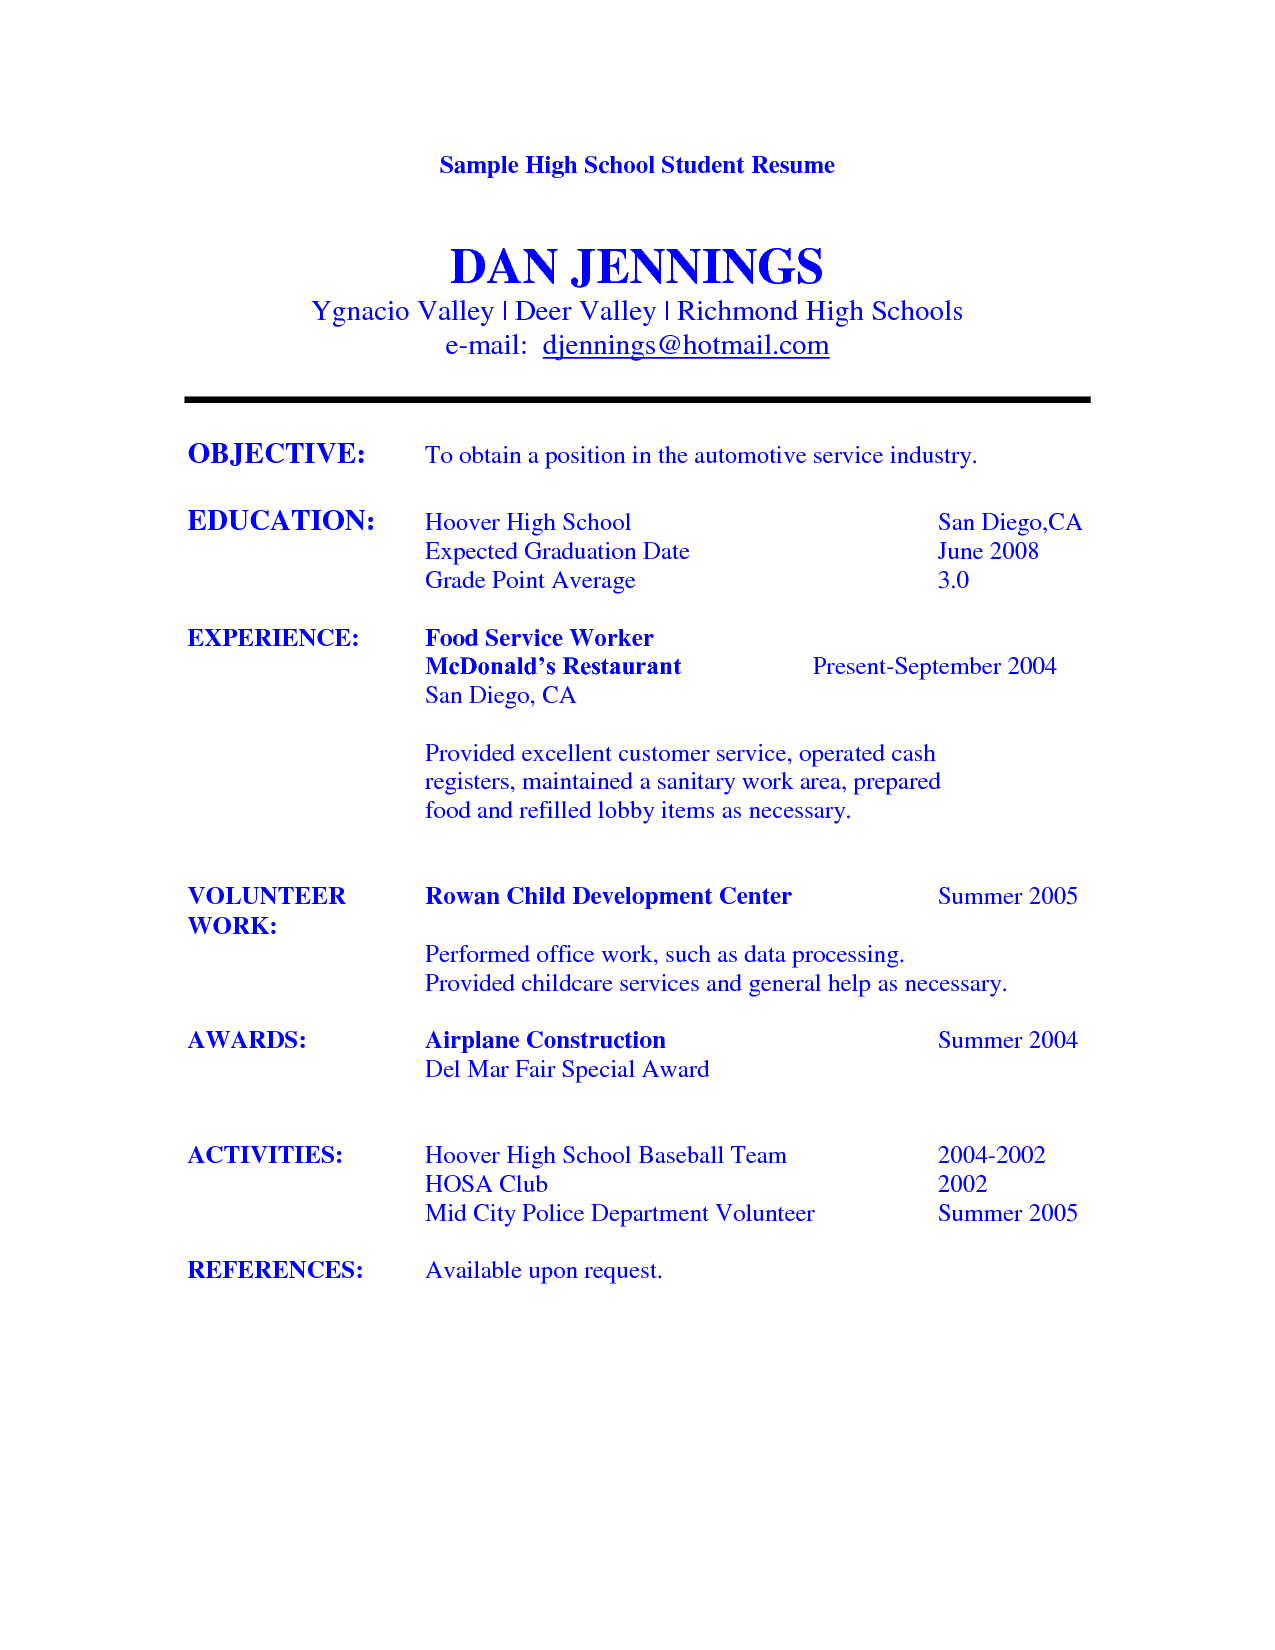 Resume Example For High School Student Sample Resumes    Http://www.resumecareer.info/resume Example For High School Student Sample  Resumes 5/